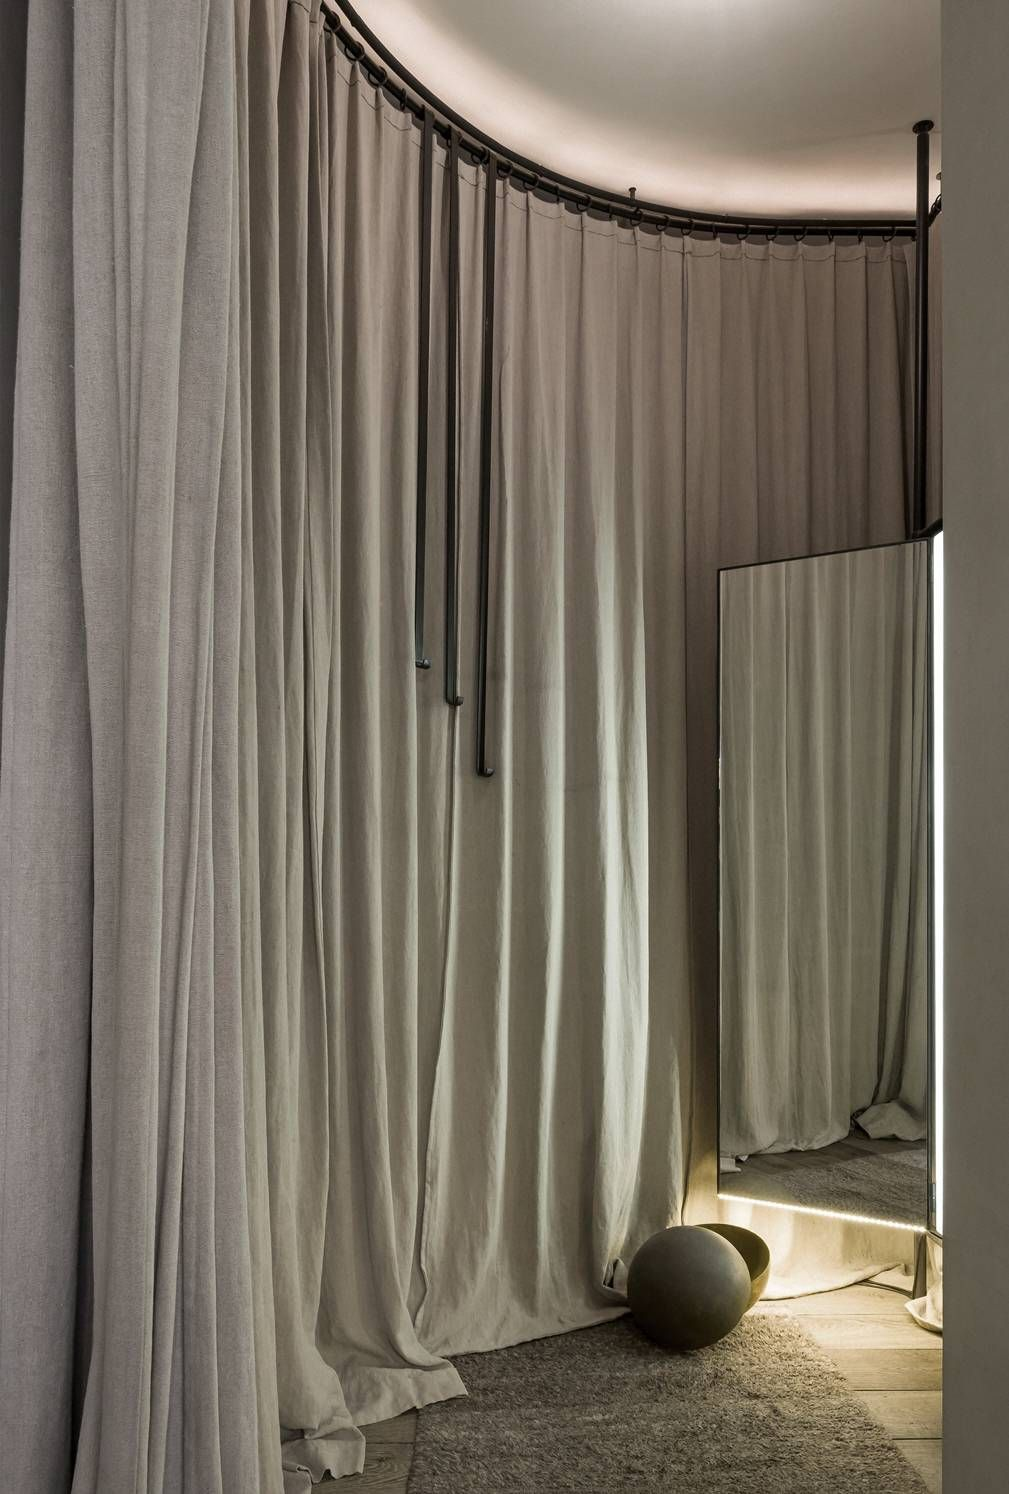 Ohletmebeinspired Tumblr Com Luxe Bedroom Retail Interior Shop